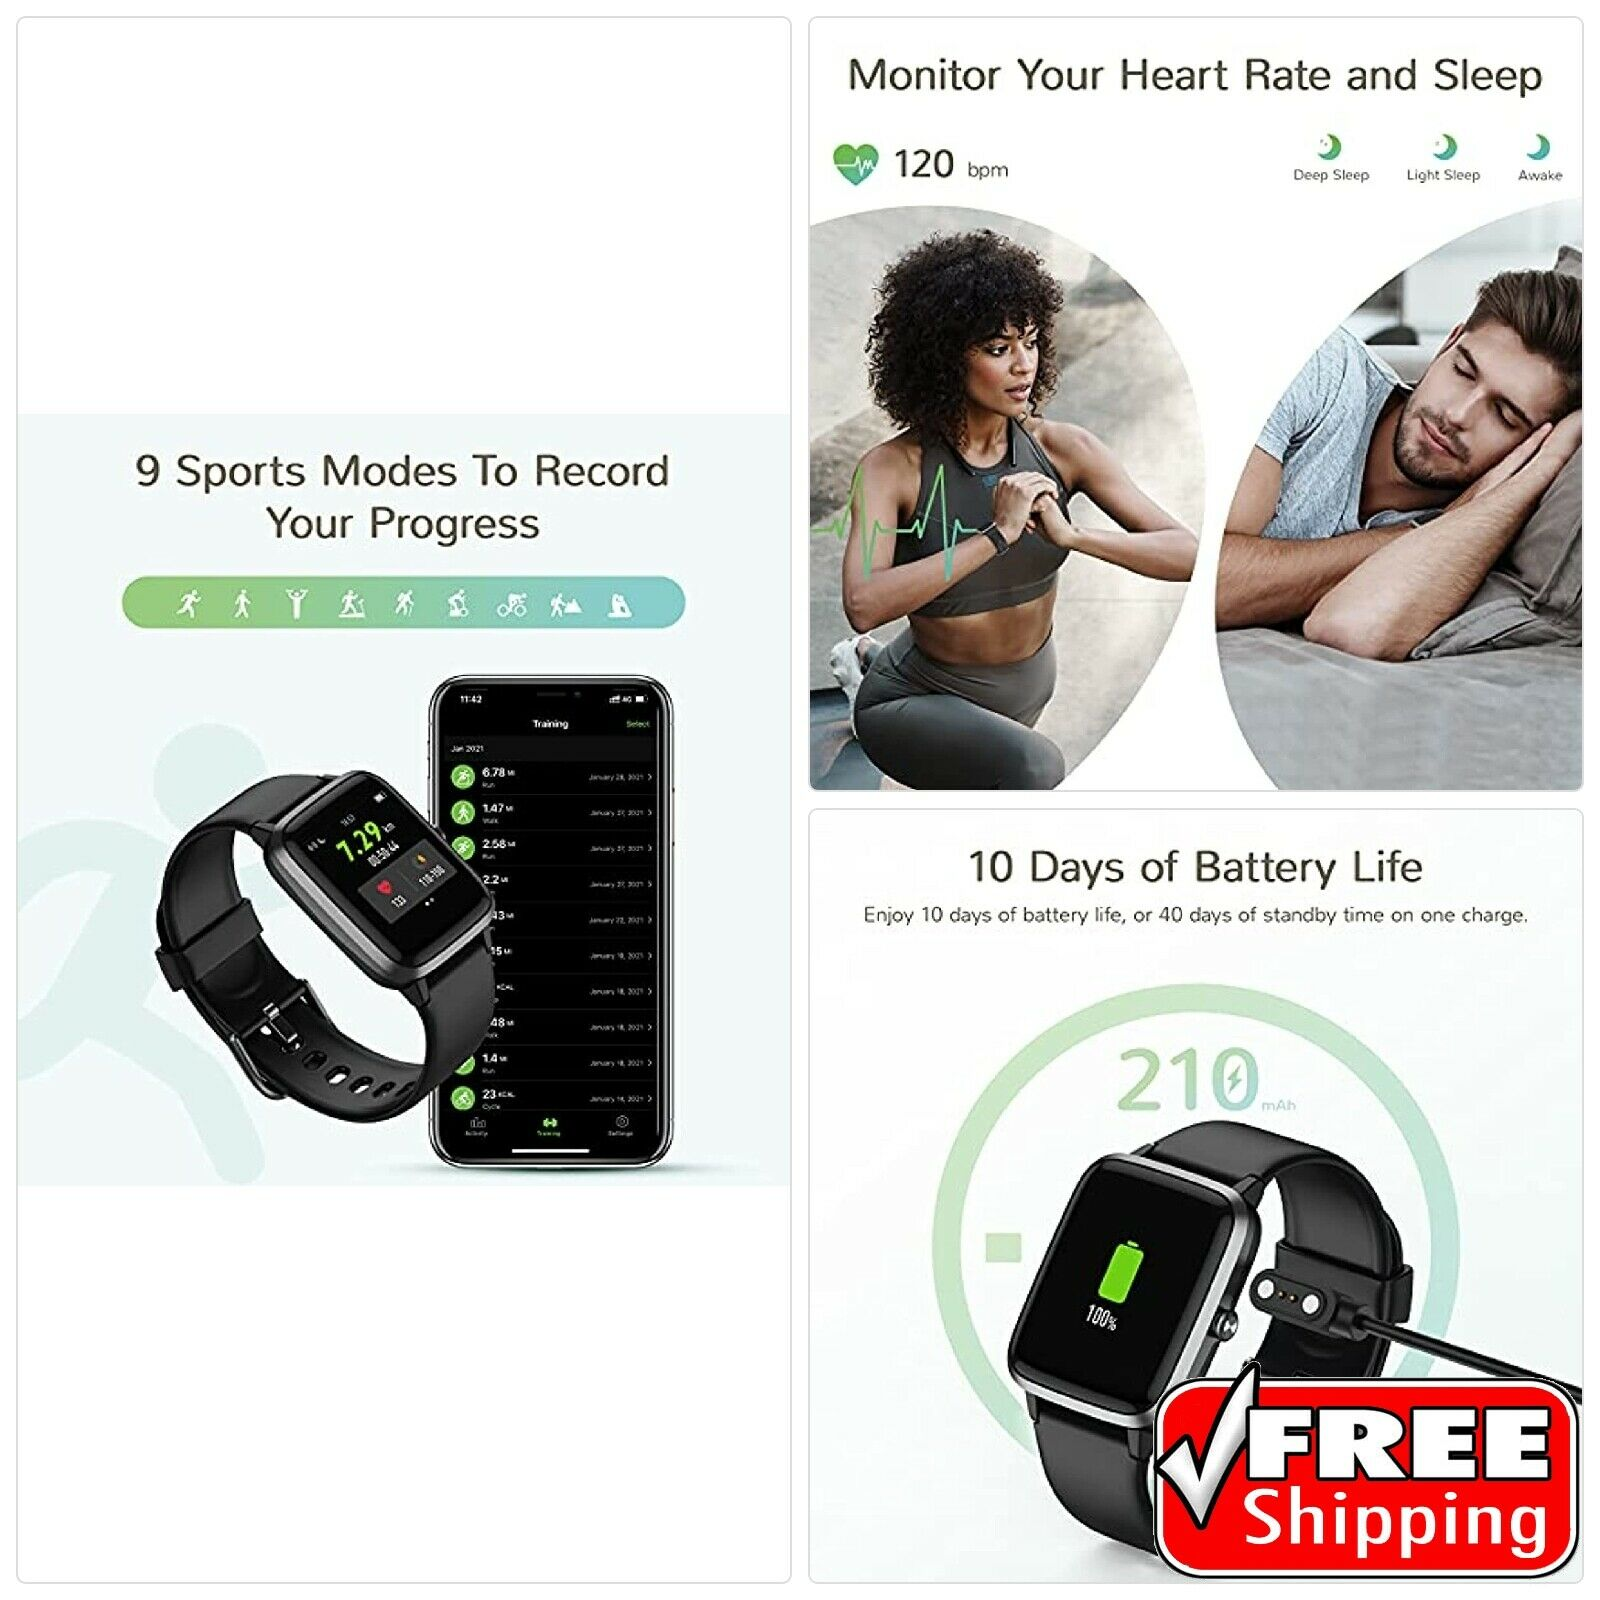 Letsfit Smart Watch, Fitness Tracker with Heart Rate Monitor, Activity Tracker w